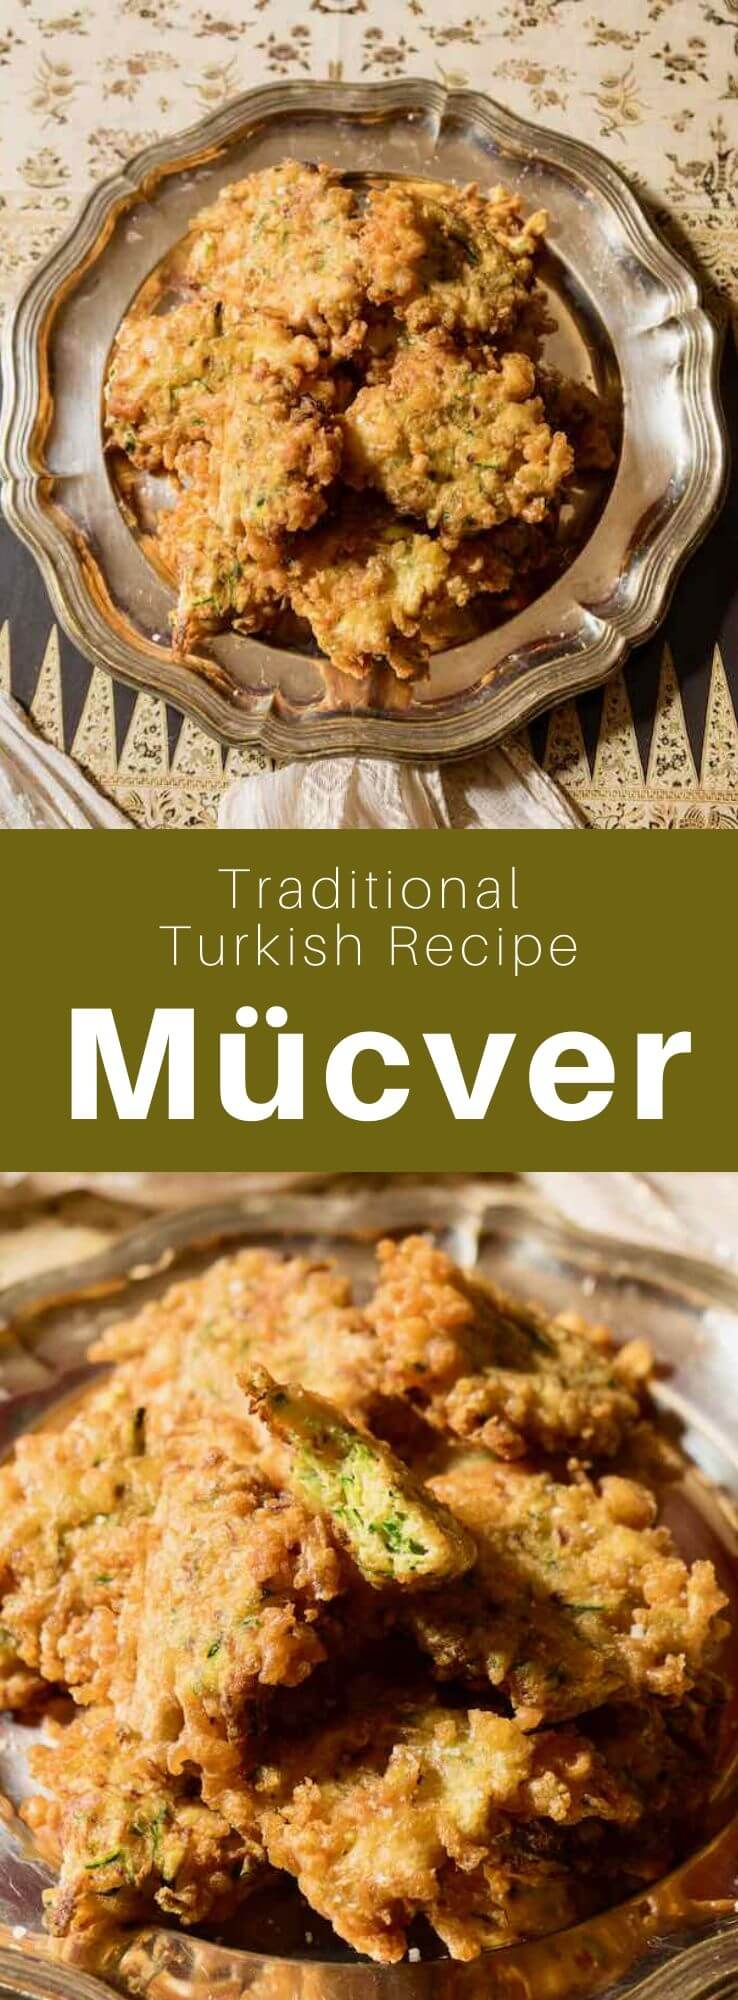 Mücver are delicious traditional zucchini fritters from Turkish cuisine that can be prepared with feta, and are often served with a yogurt sauce. #Turkey #Turkish #TurkishRecipe #TurkishFood #TurkishCuisine #WorldCuisine #196flavors